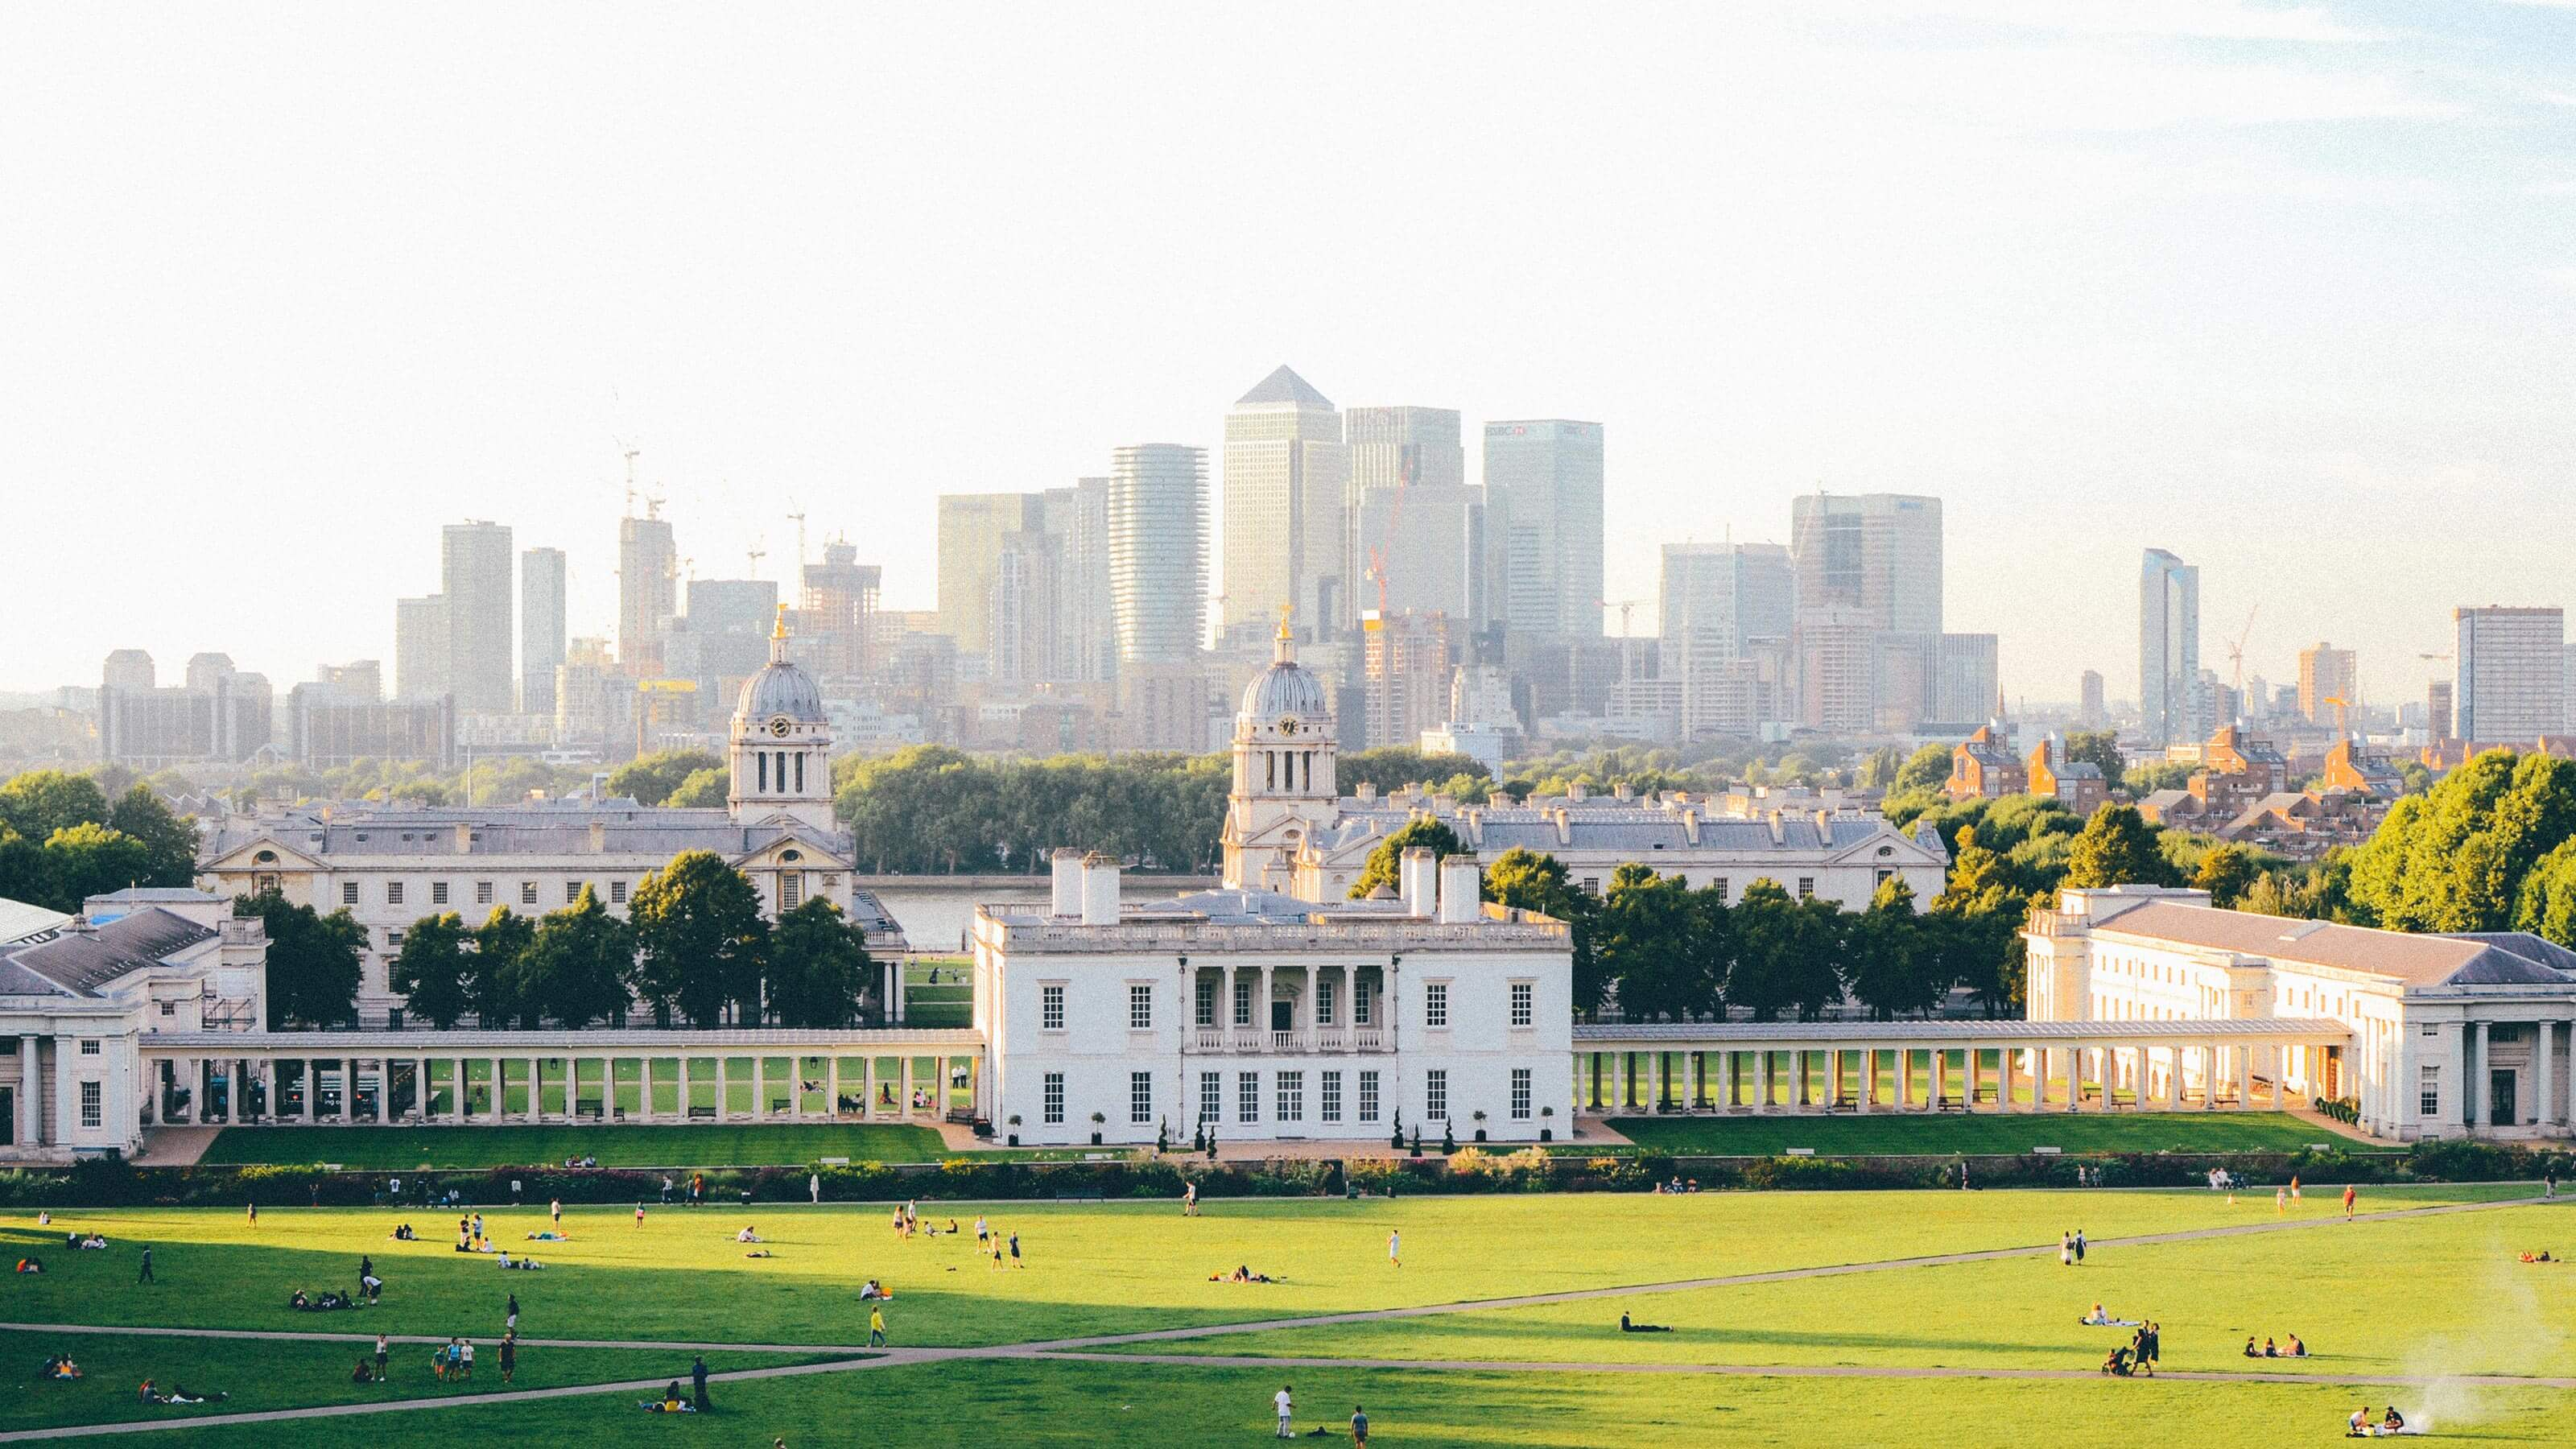 The view in the distance of the city in London from Greenwich Park